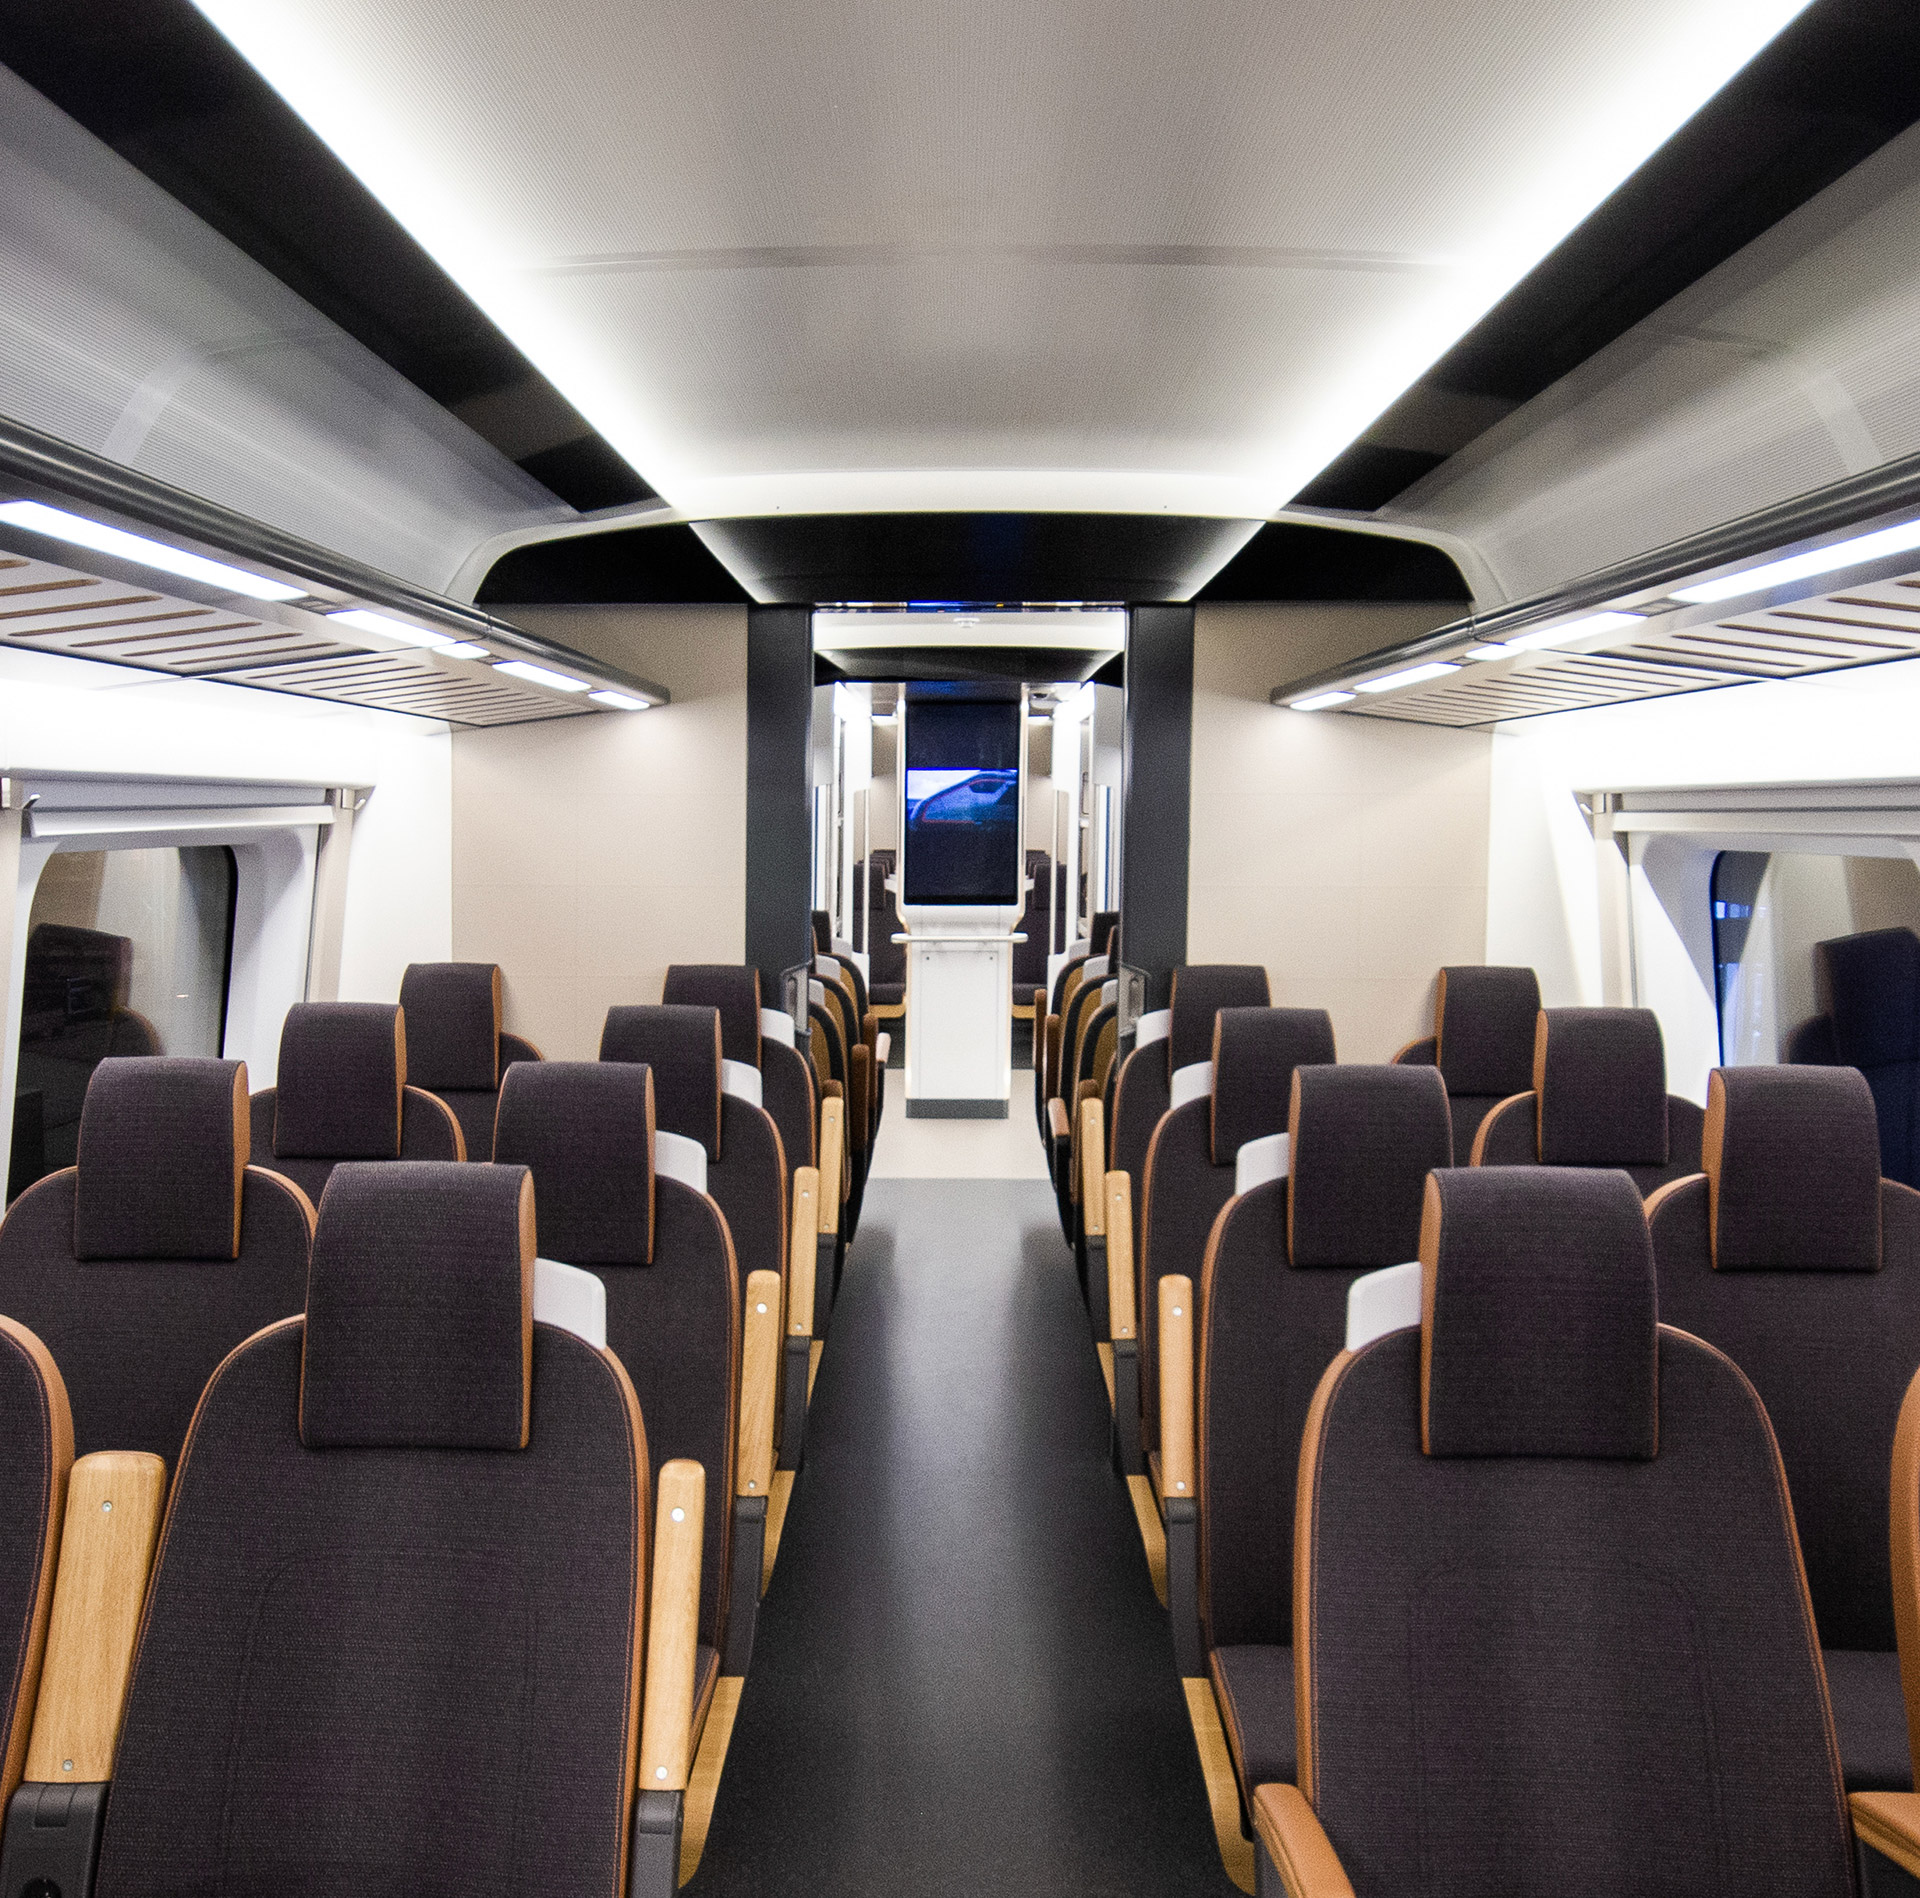 transportation-design-interior-train.jpg